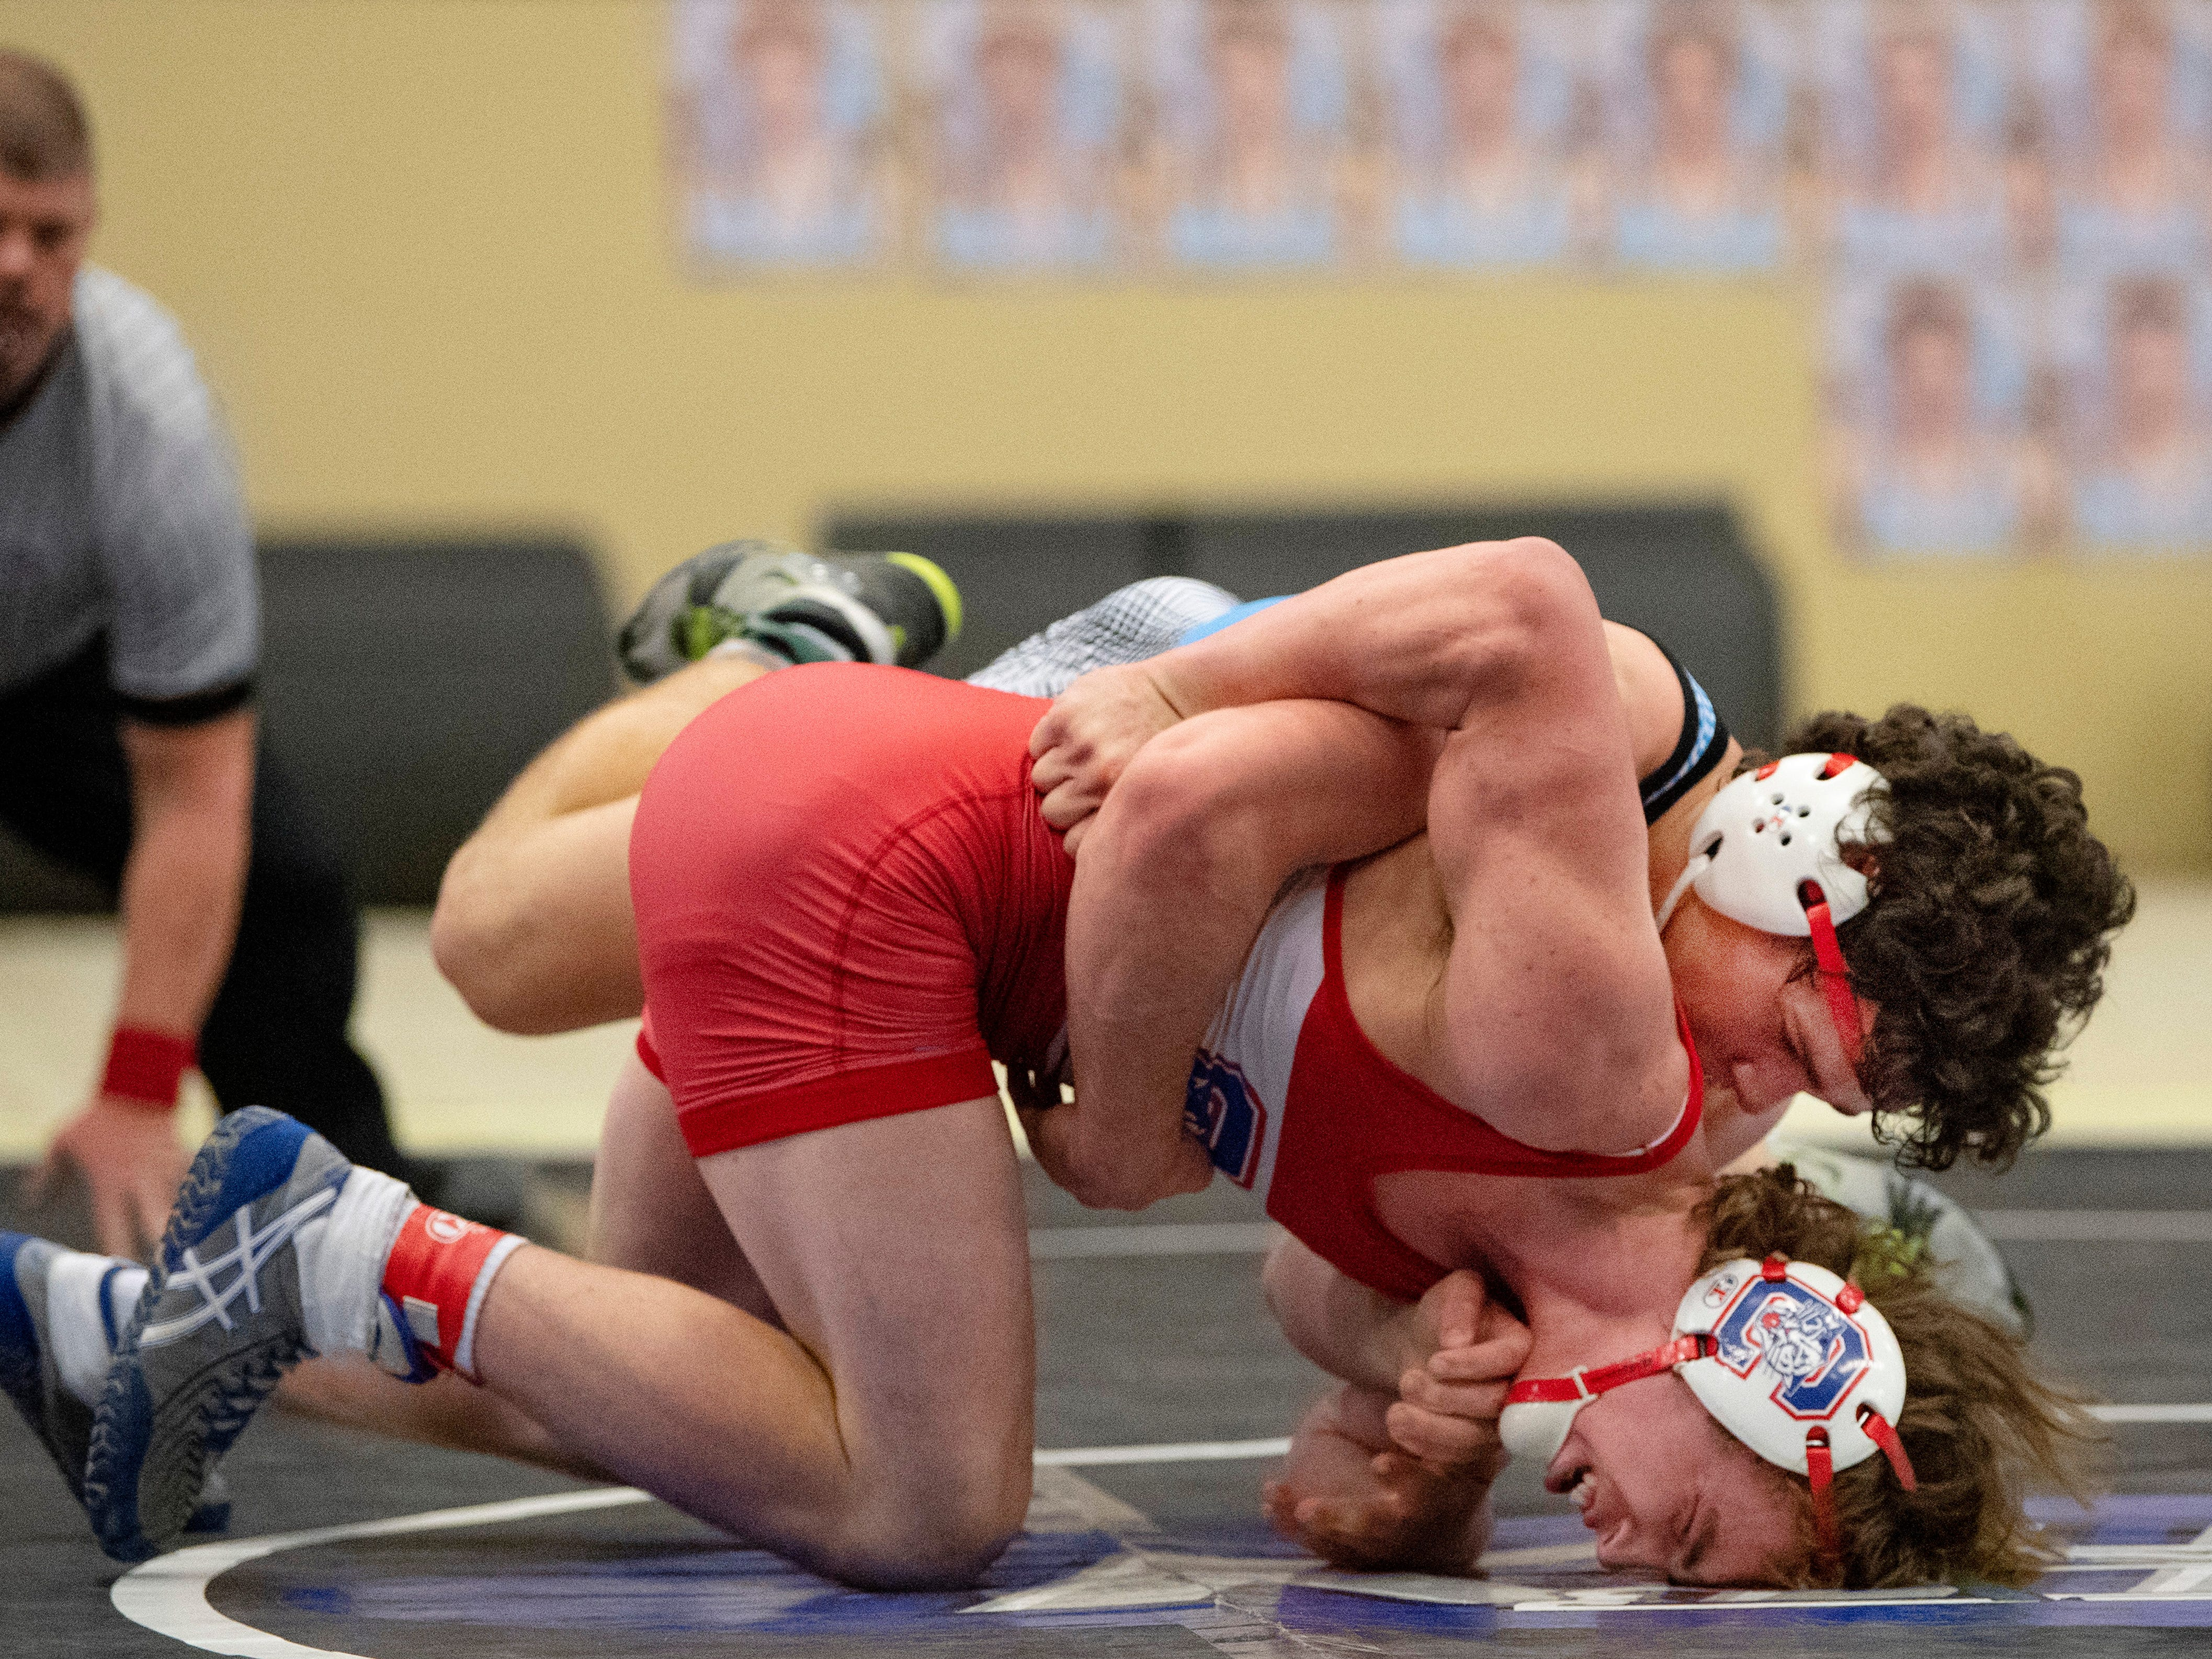 Union County's Micah Ervin, top, competes with Conner's Clayton Boyd during their 170-pound championship match at the KHSAA State Wrestling Championships at the Alltech Arena in Lexington, Ky., Saturday afternoon. Ervin won the match with a 5-3 decision to take home the state championship.